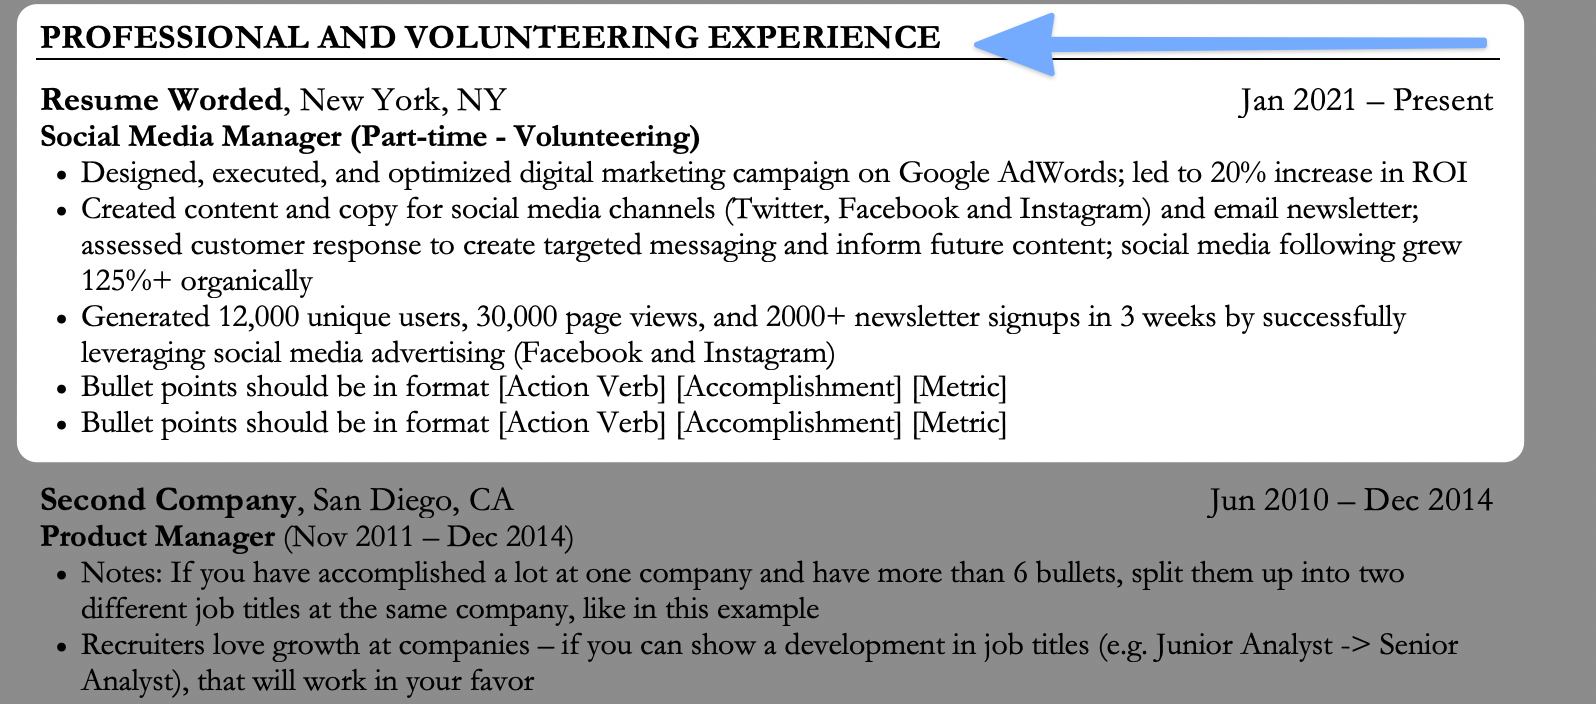 Volunteer work should be included on your resume, especially if it is relevant